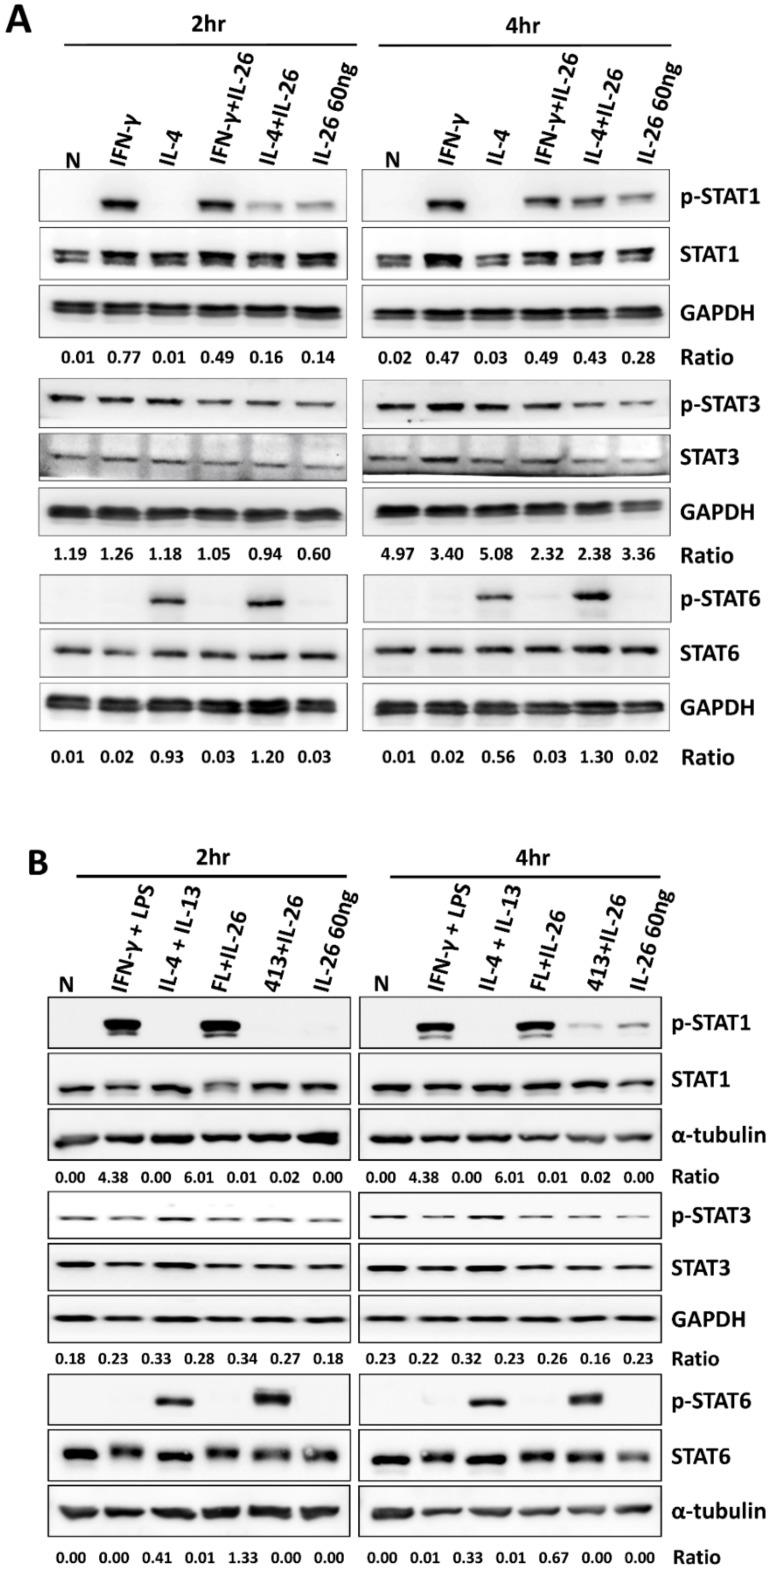 Effect of IL-26 on <t>STAT1,</t> STAT3, and STAT6 activation in M1 and M2 macrophage differentiation. ( A ) RAW264.7 cells were serum-starved for 16 h and treated with IFN-γ (20 ng/mL) or IL-4 (20 ng/mL) in the presence or absence of IL-26, and ( B ) THP-1 cells were treated with IFN-γ (20 ng/mL) plus LPS (10 ng/mL) or IL-4 (20 ng/mL) plus IL-13 (20 ng/mL) in the presence or absence of IL-26 for 2 and 4 h to further detect phosphorylated or non-phosphorylated STAT1, STAT3, and STAT6 proteins. Cell extracts were analyzed by western blot using antibodies specifically directed against the phosphorylated forms of STATs, compared with data obtained with antibodies directed against the unphosphorylated states of the kinases. Equal amounts of protein were loaded in each lane as demonstrated by the level of GAPDH. A representative result of at least three independent experiments is shown. (FL+IL-26: IFN-γ+LPS+IL-26; 413+IL-26: IL-4 + IL-13+IL-26)